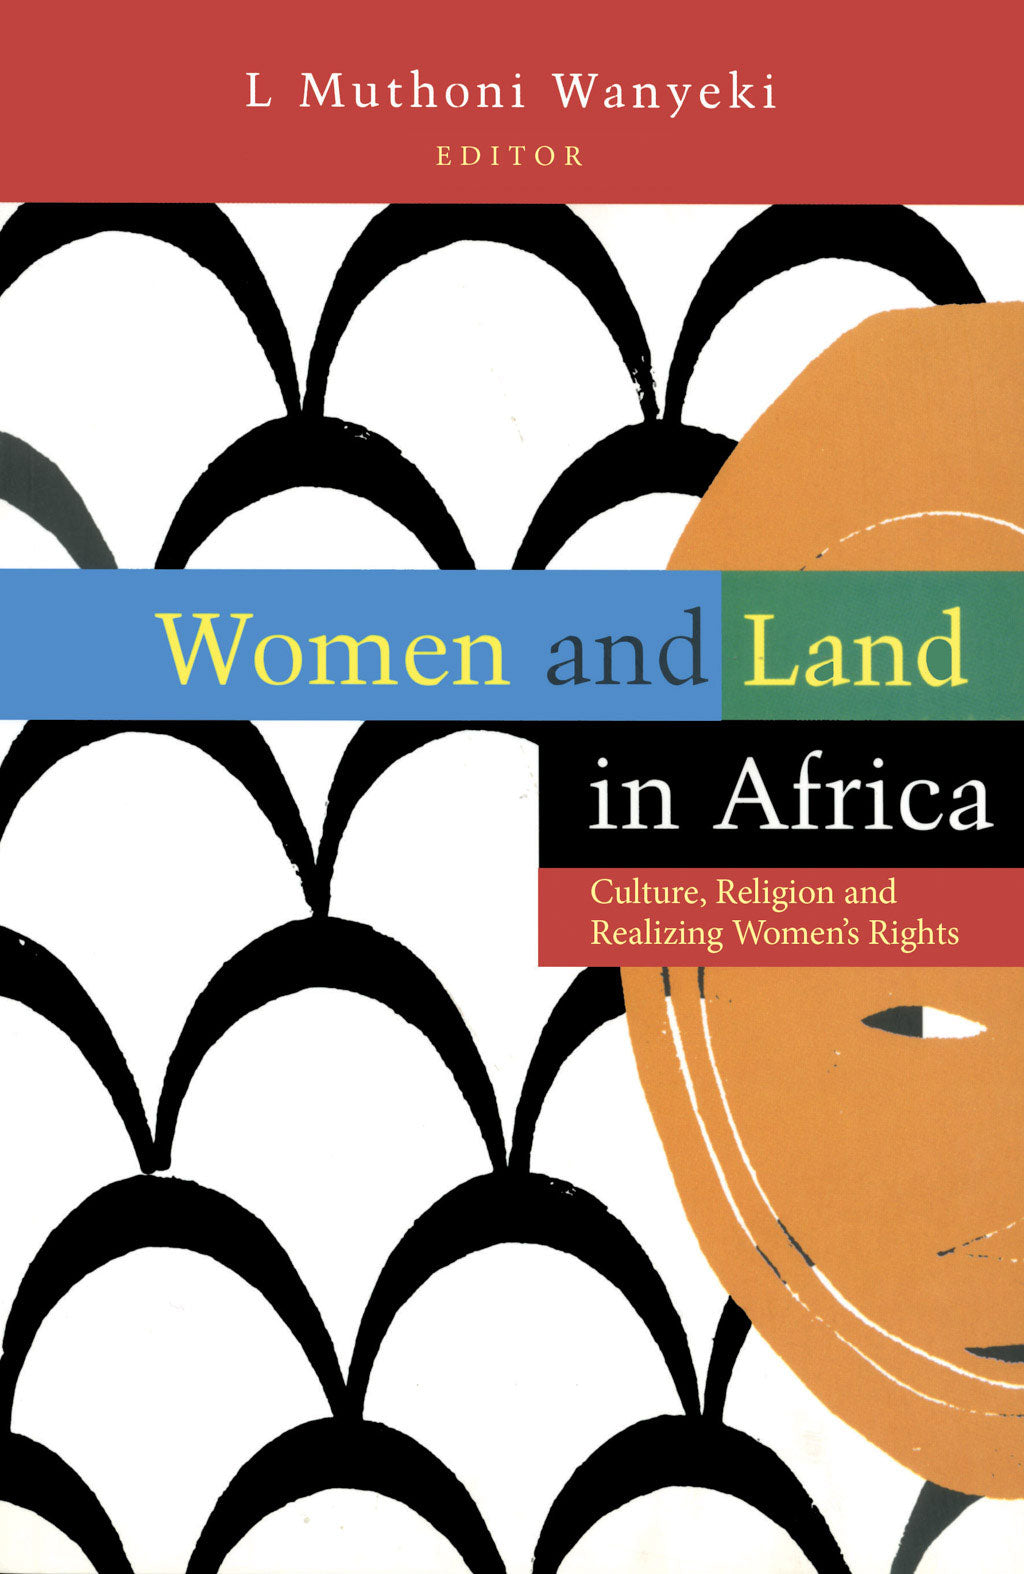 WOMEN AND LAND IN AFRICA: Culture, Religion and Realizing Women's Rights